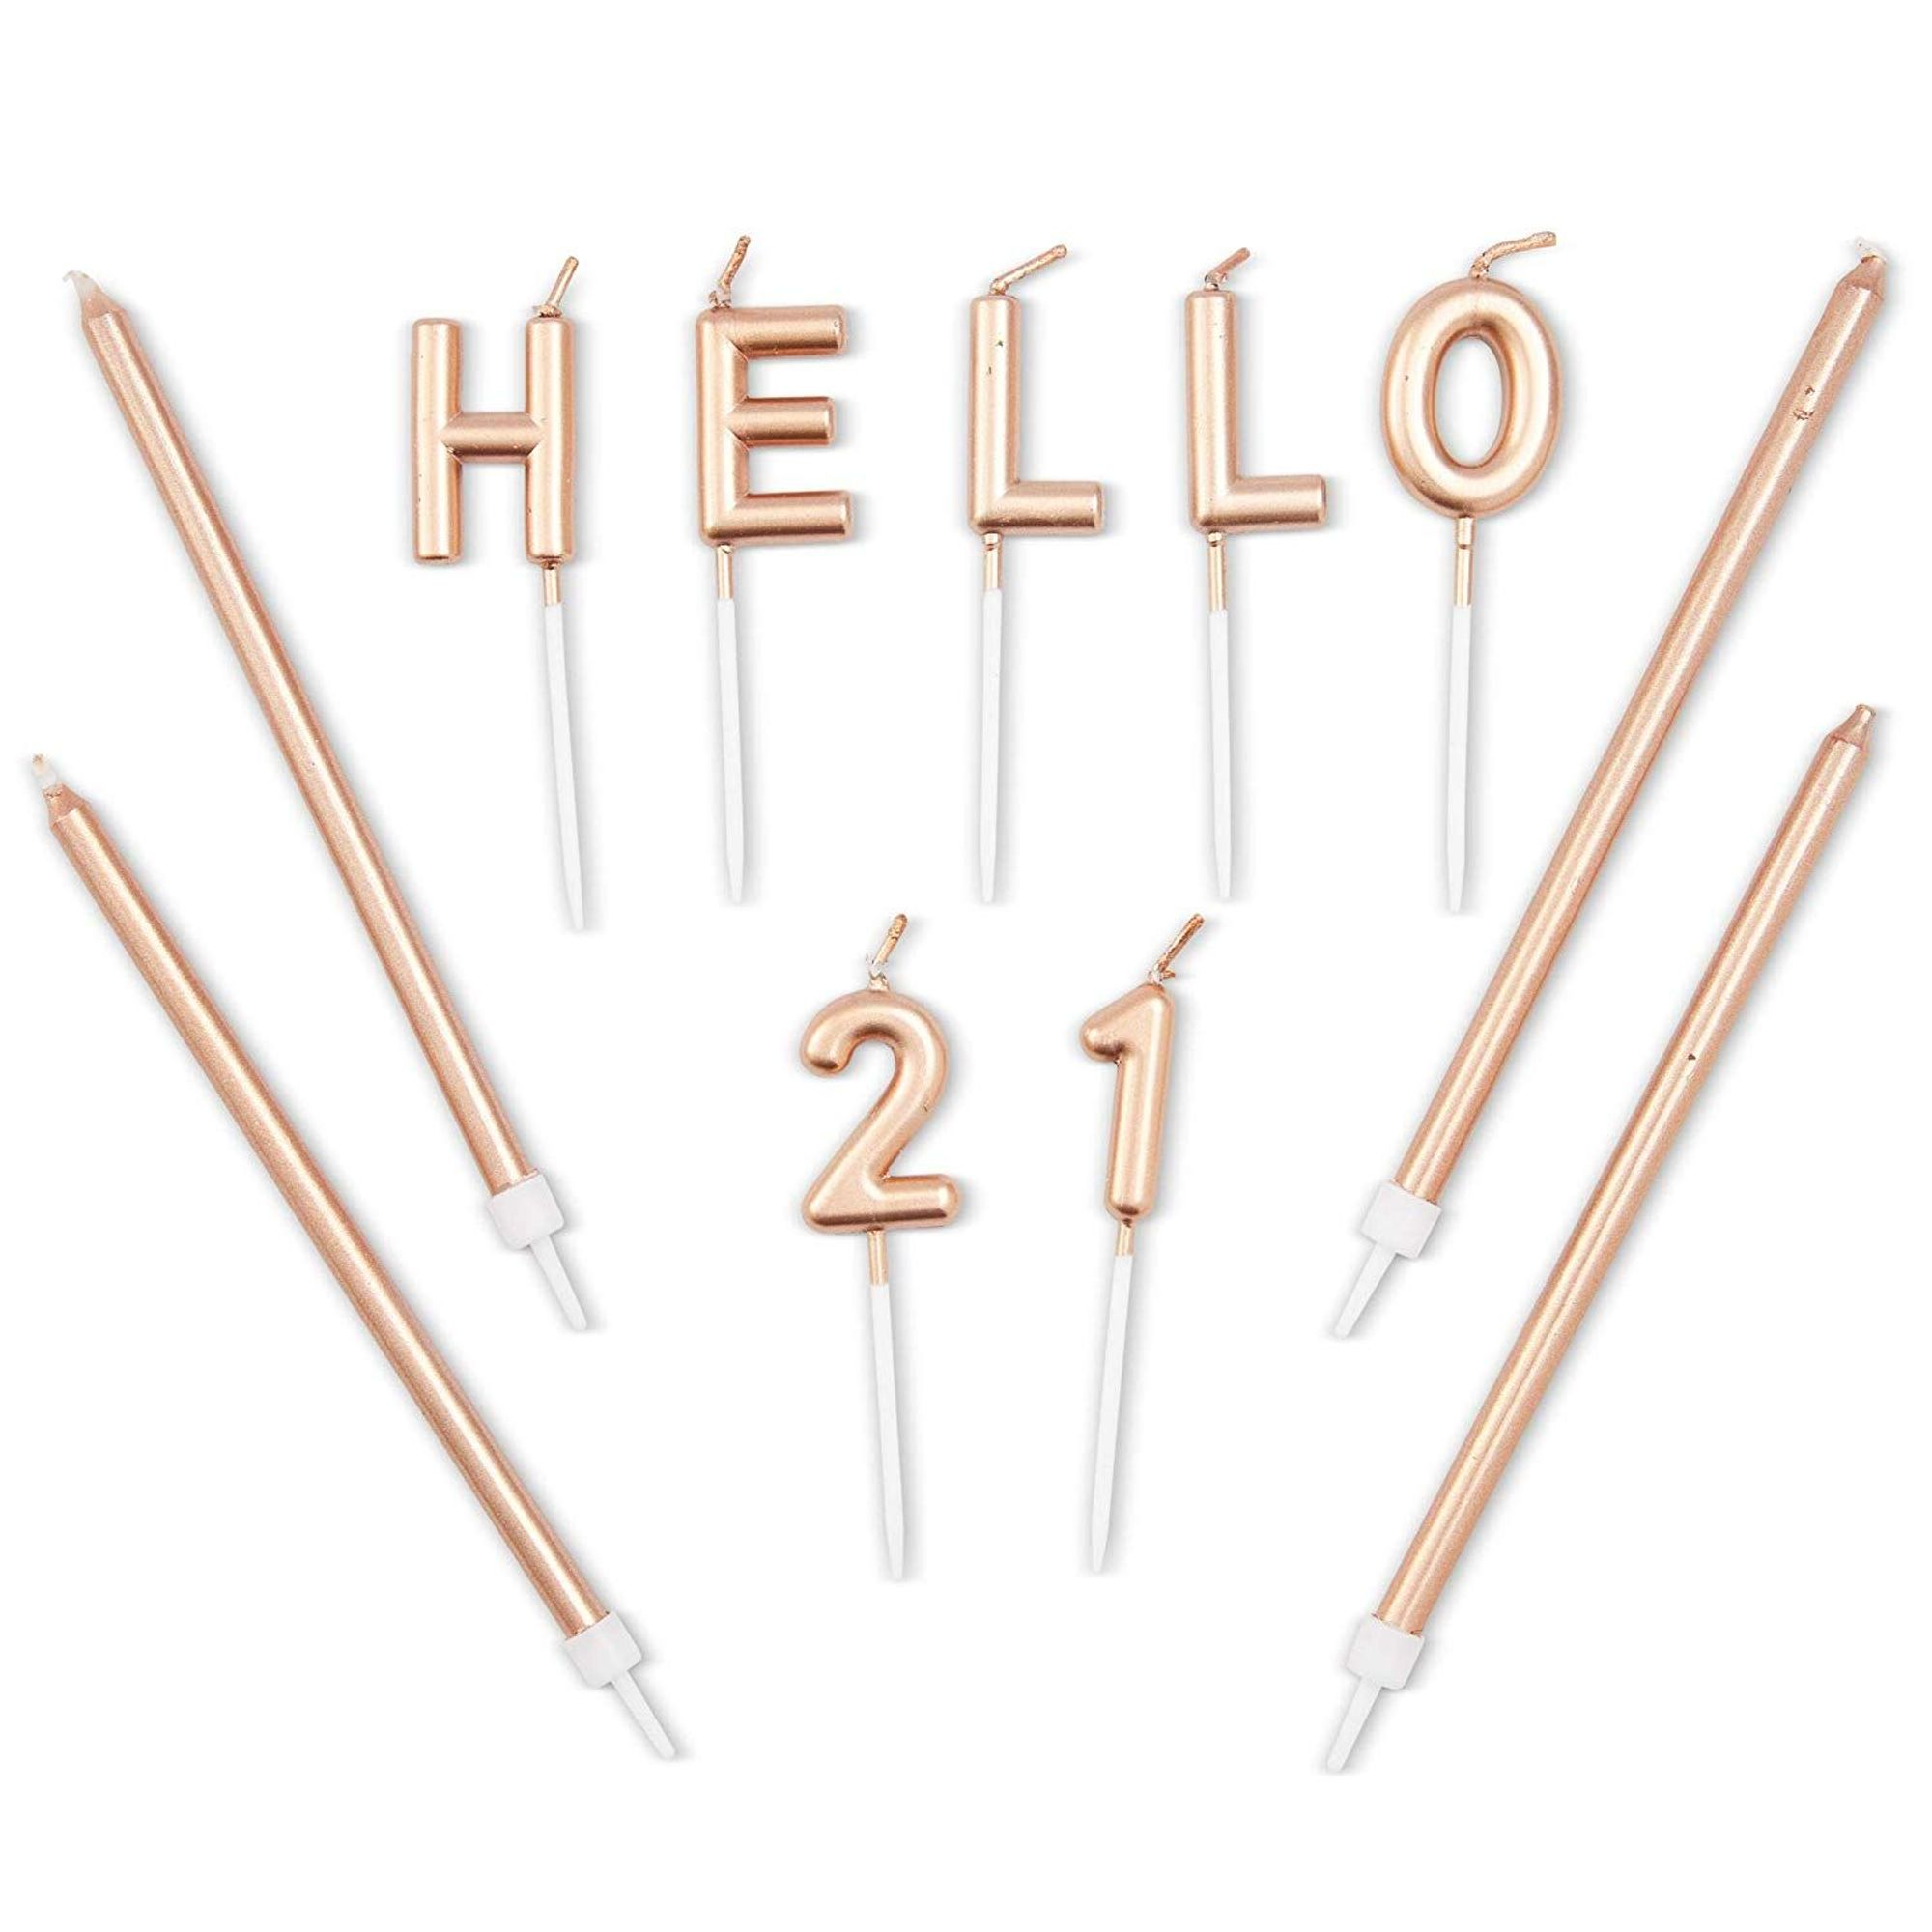 31 Count Rose Gold Long Thin 21th Birthday Cake Candles ...